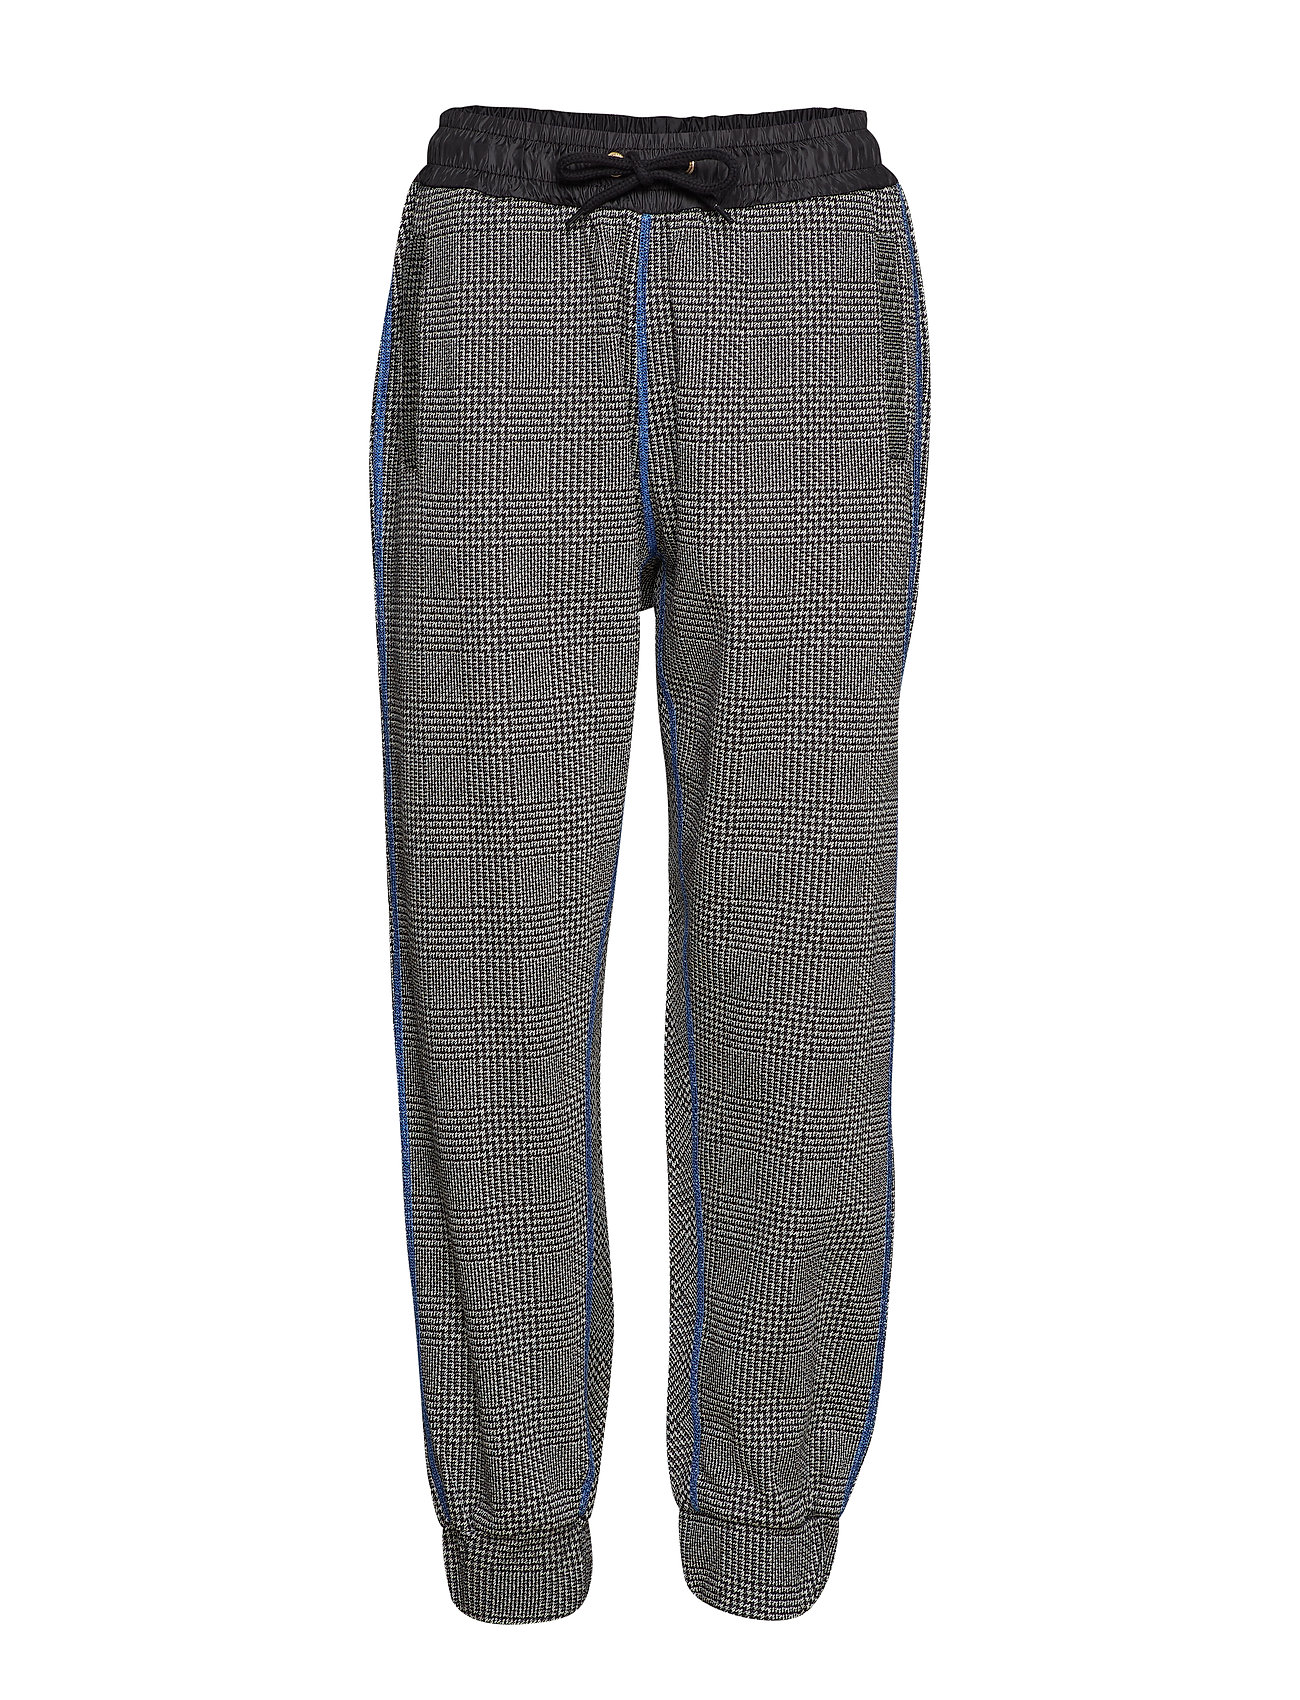 Hilfiger Collection POW TRACK PANT - METEORITE / MULTI